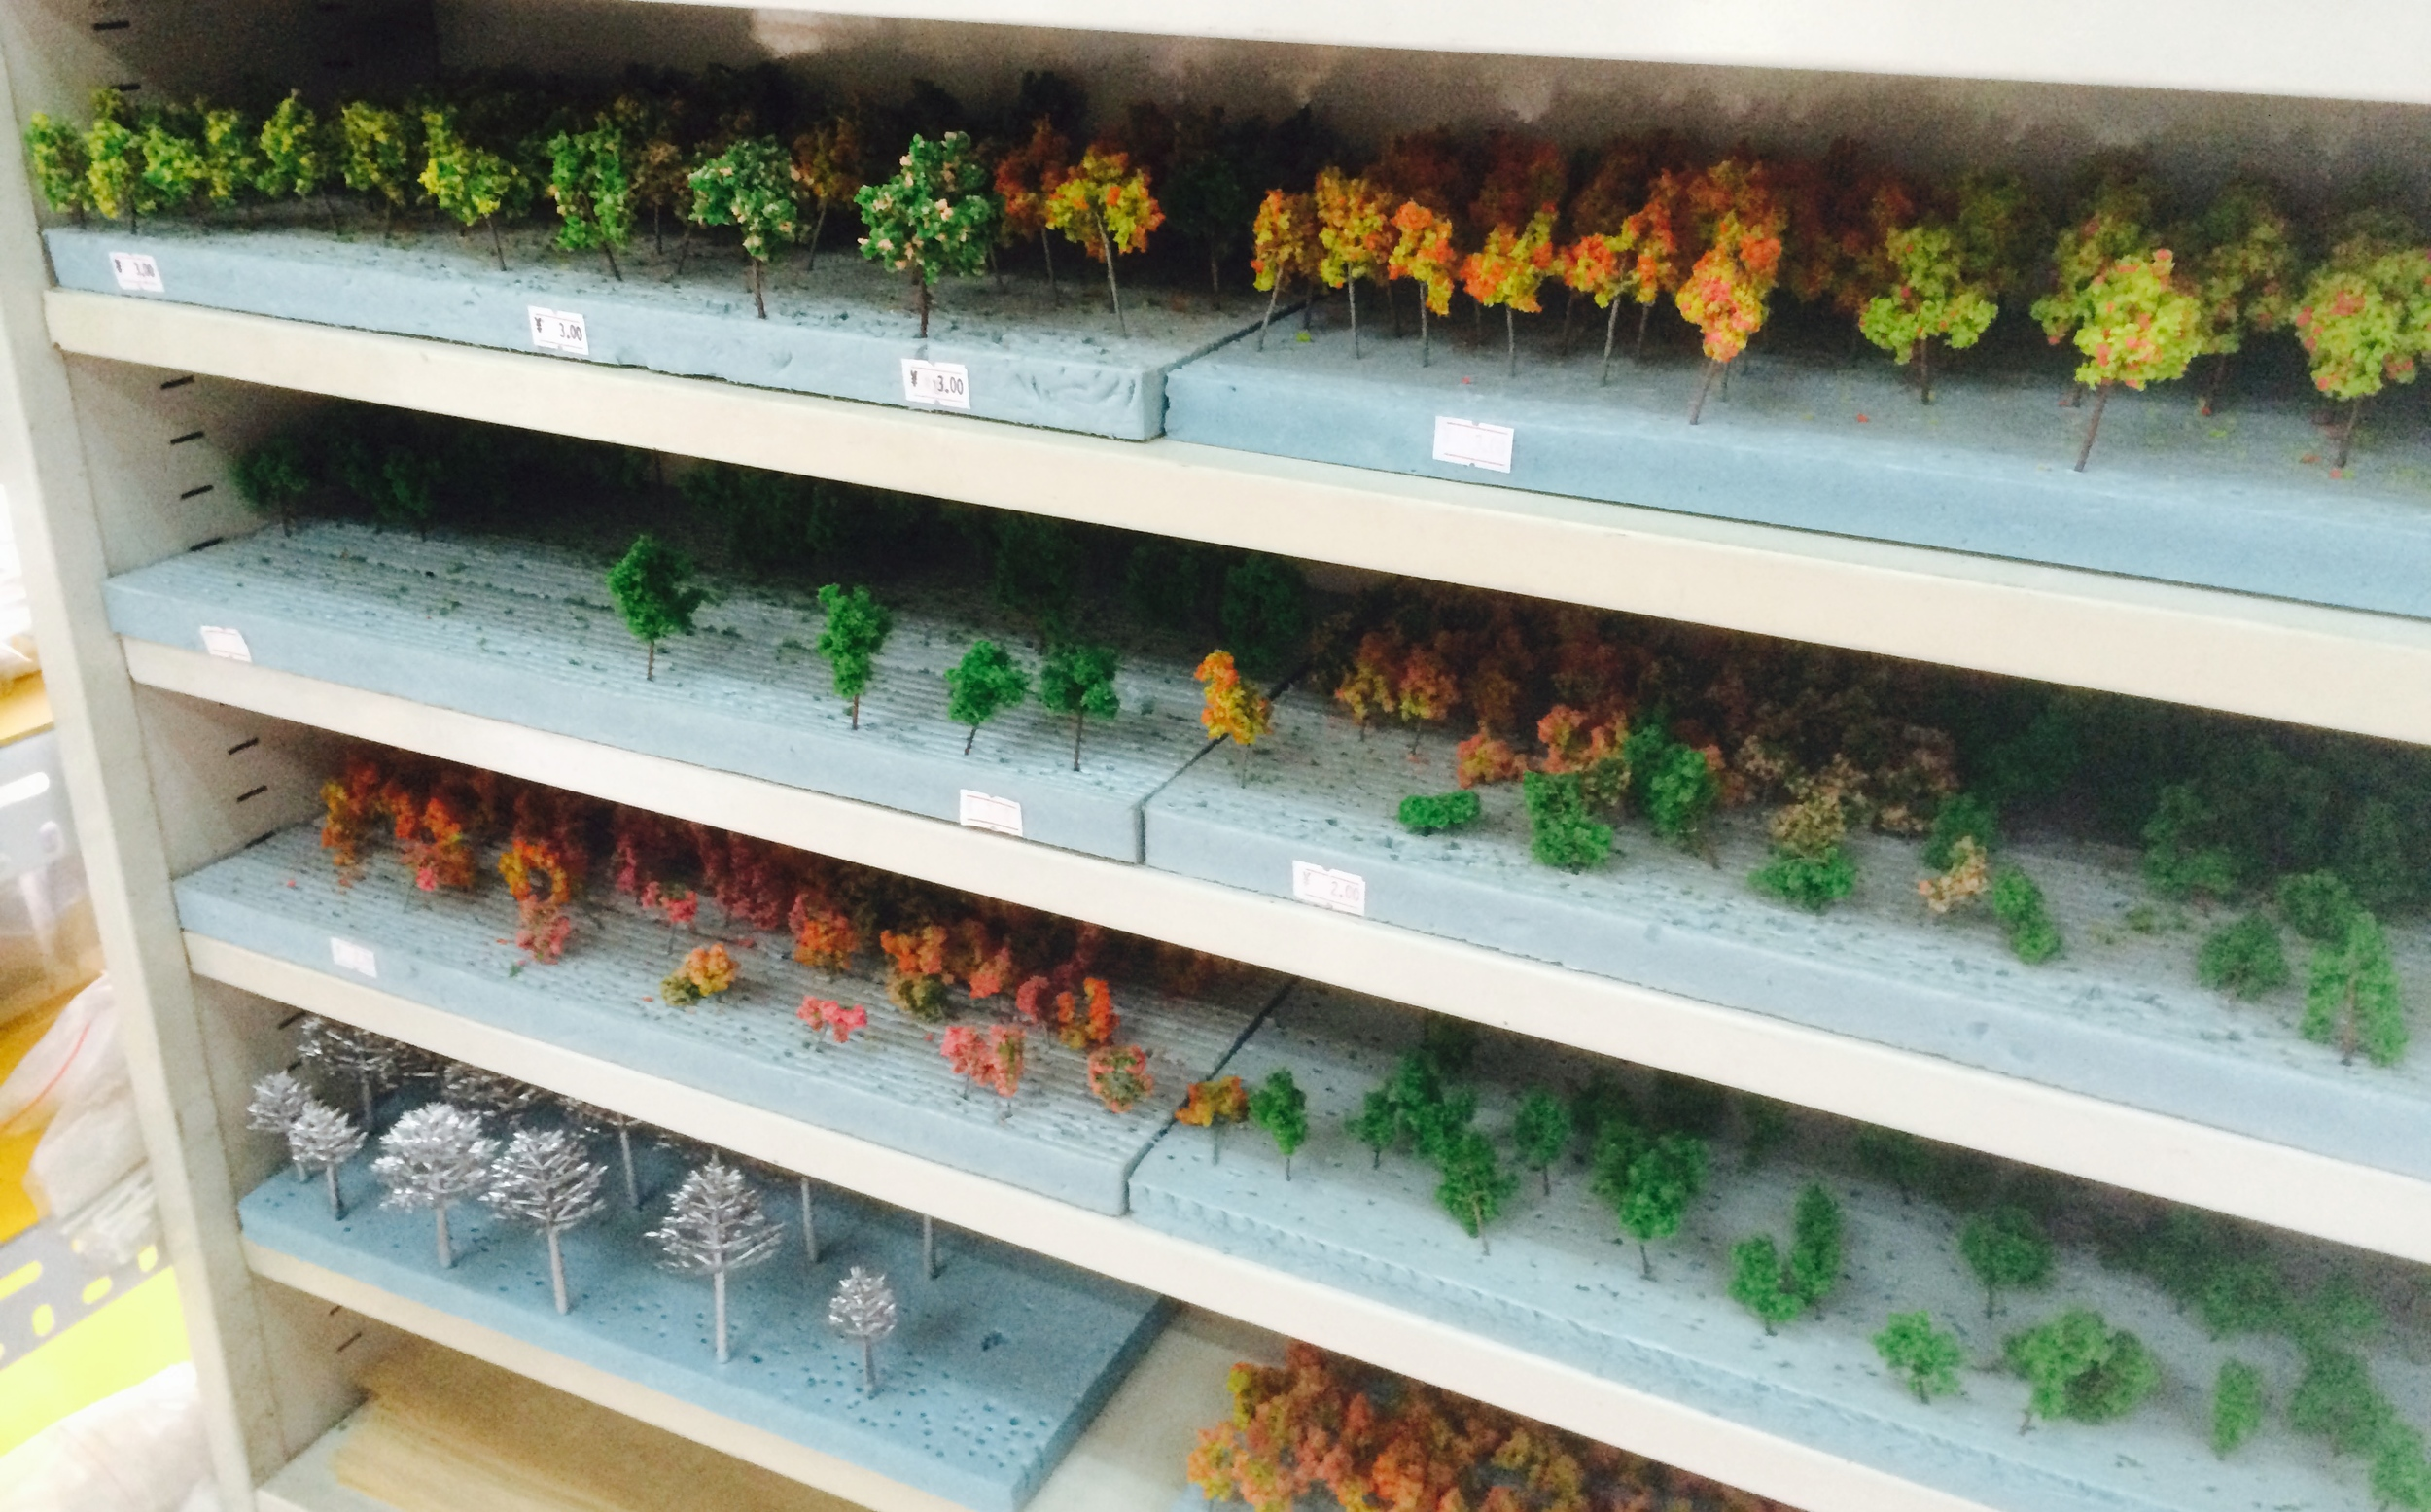 scale model trees from an art supply store called Bai Hua